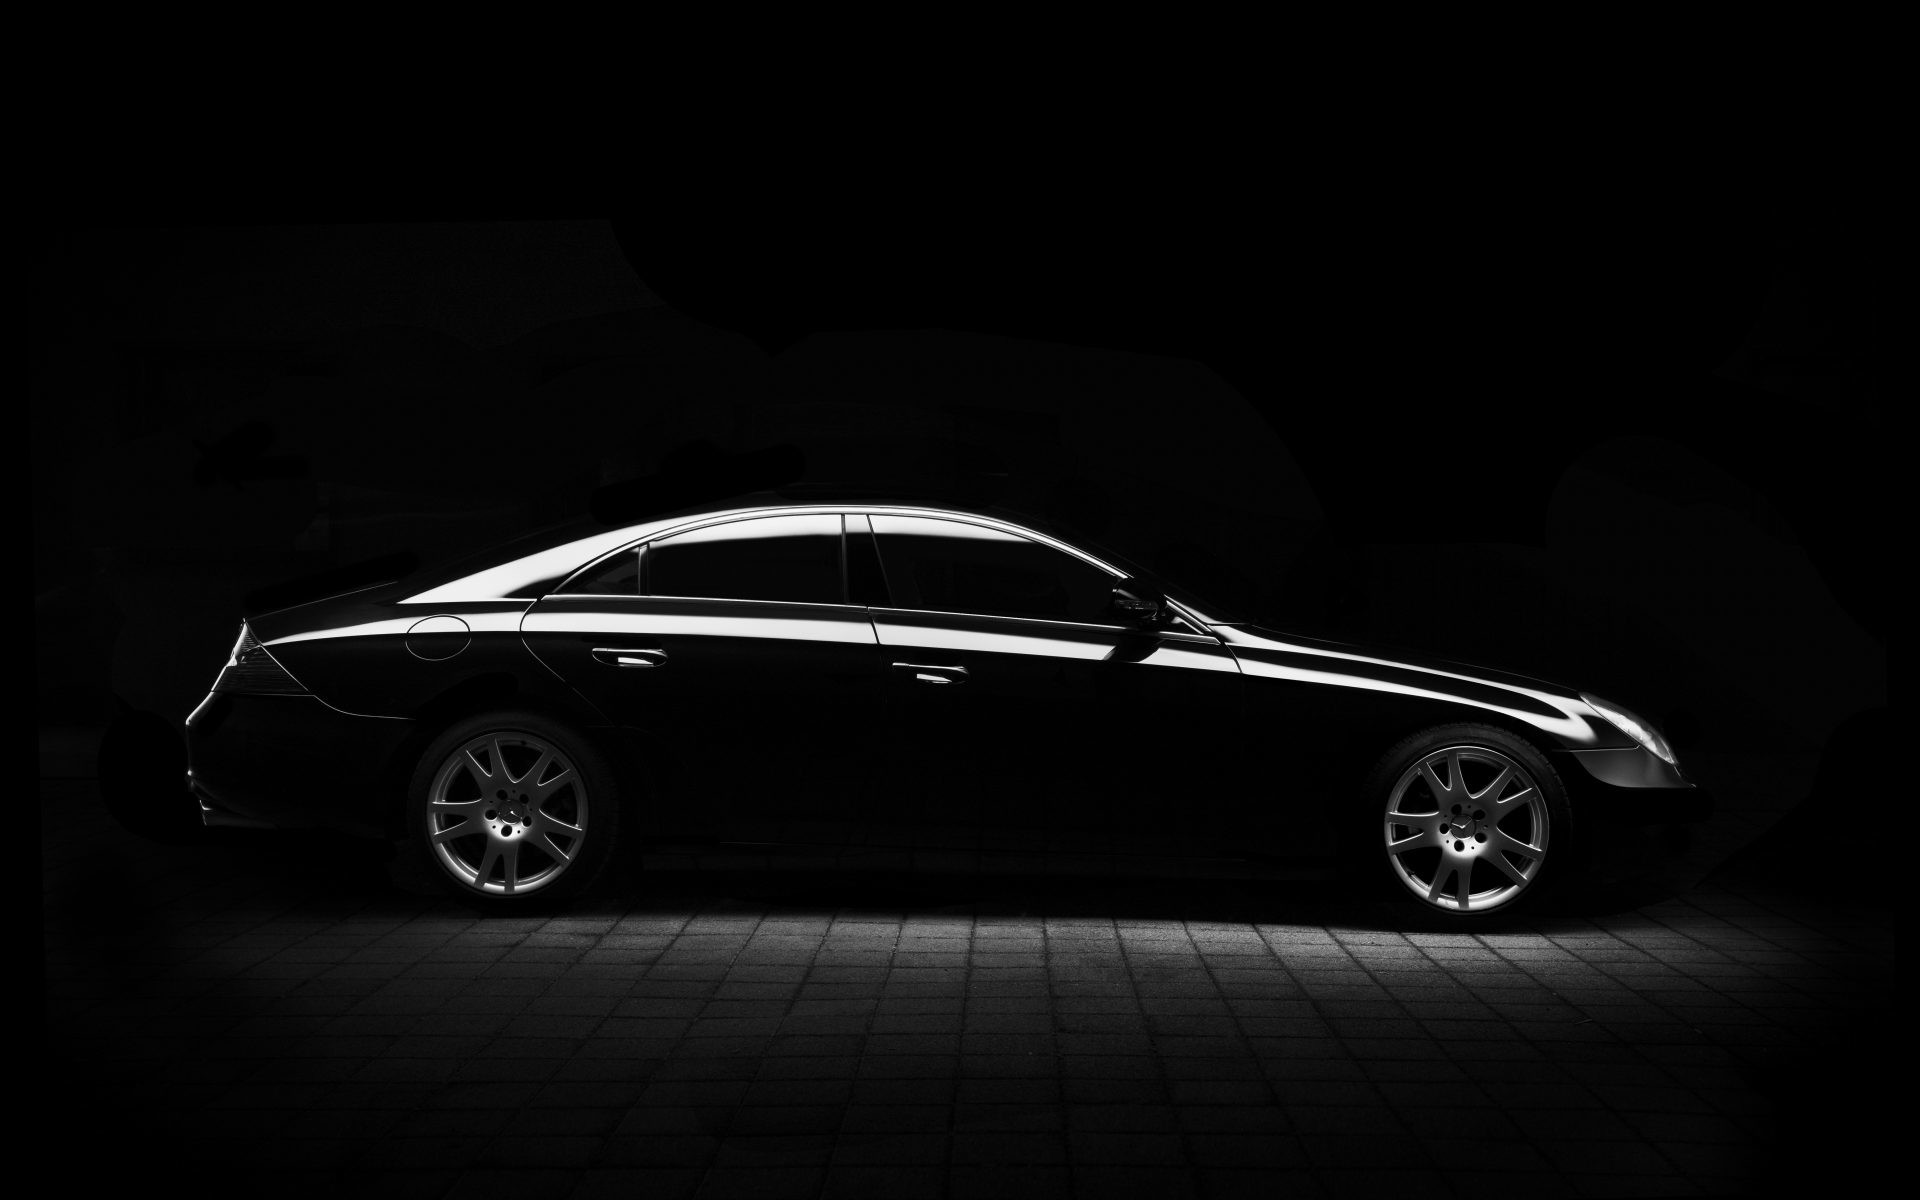 1920x1200 lovely black car wallpaper with black background